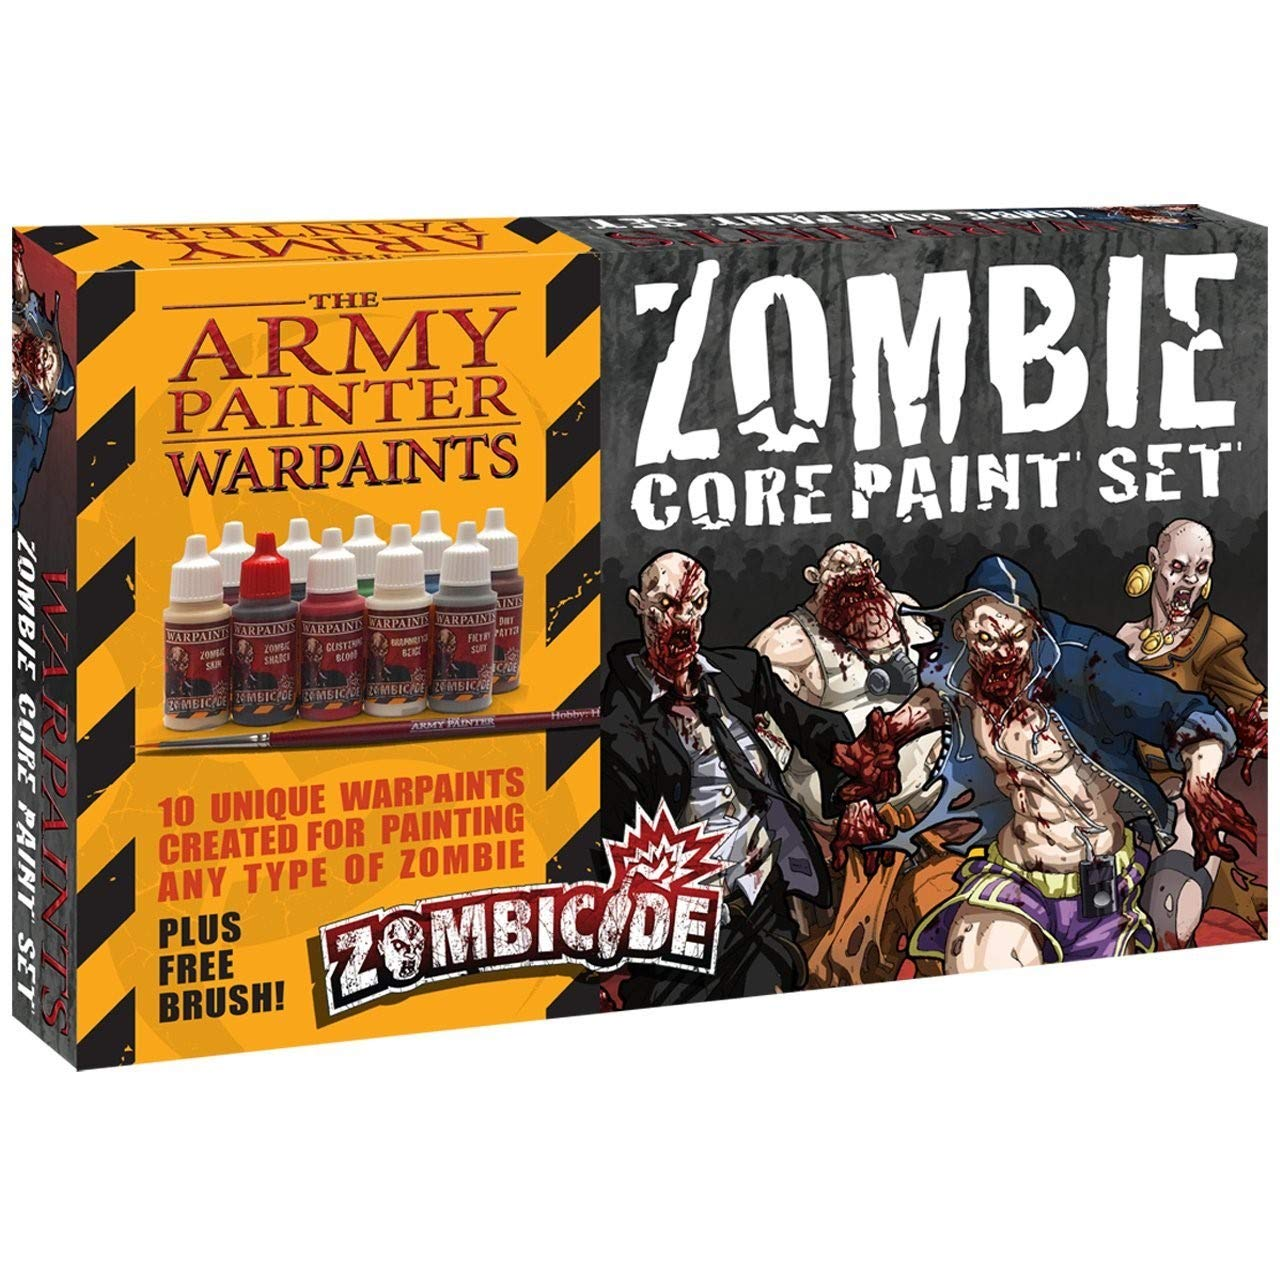 The Army Painter Warpaints Starter Paint Set with Free Paintbrush - Zombie Miniature Painting Set, 10 Dropper Bottles of Zombicide Paints for Zombicide Board Games - Zombicide Core Paint Set WP8007